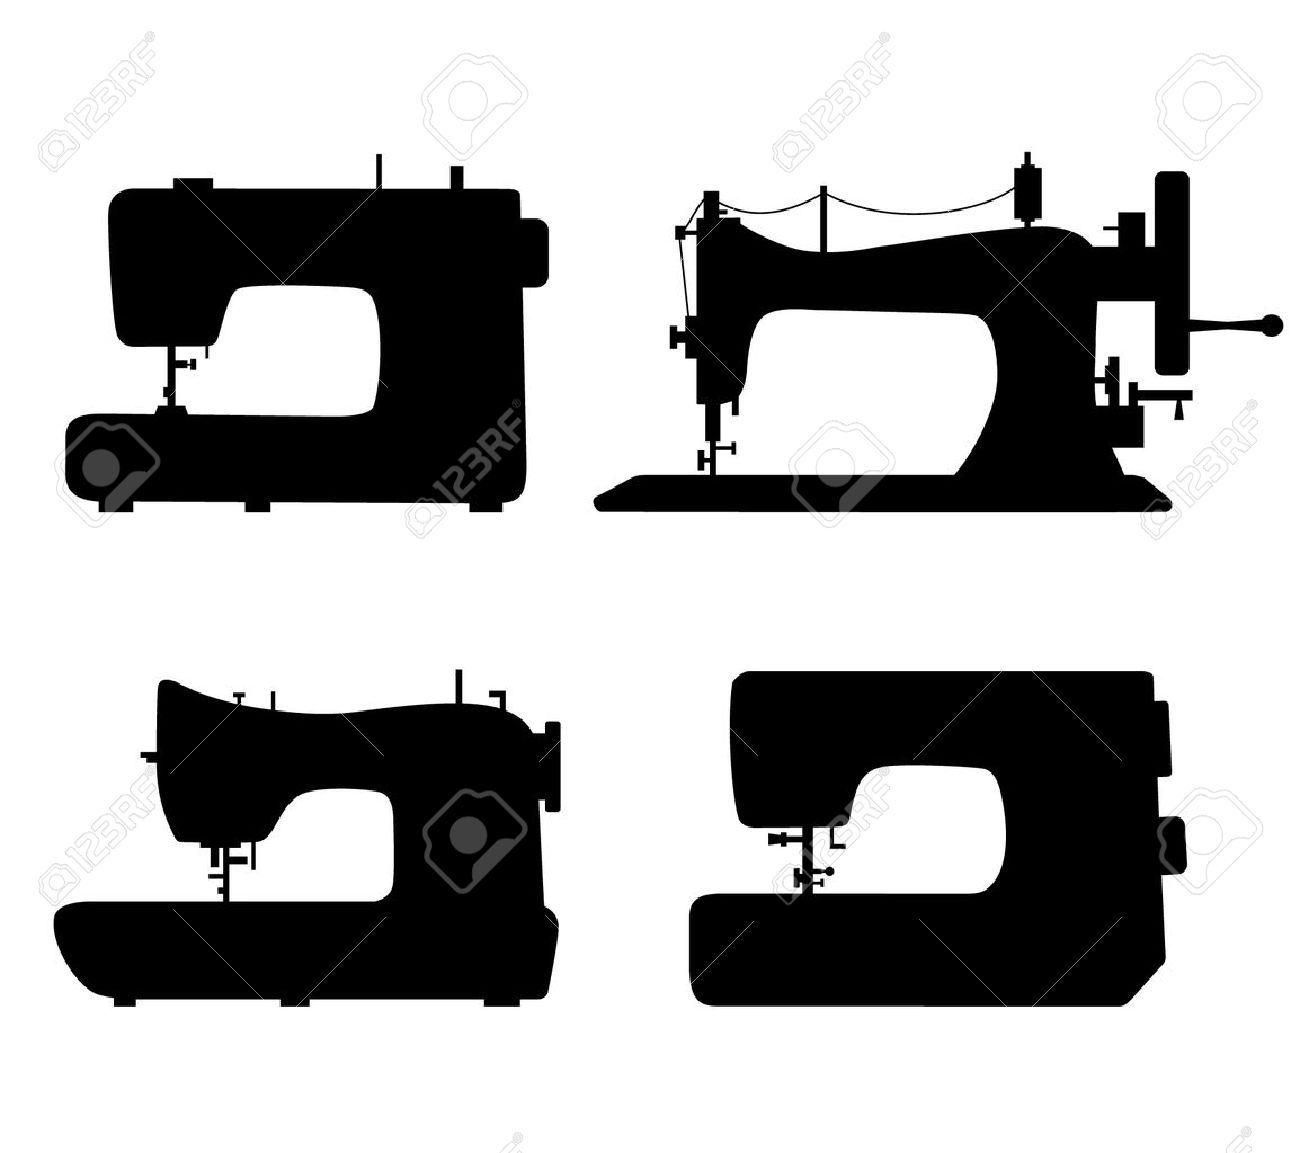 Sewing Machine clipart #5, Download drawings